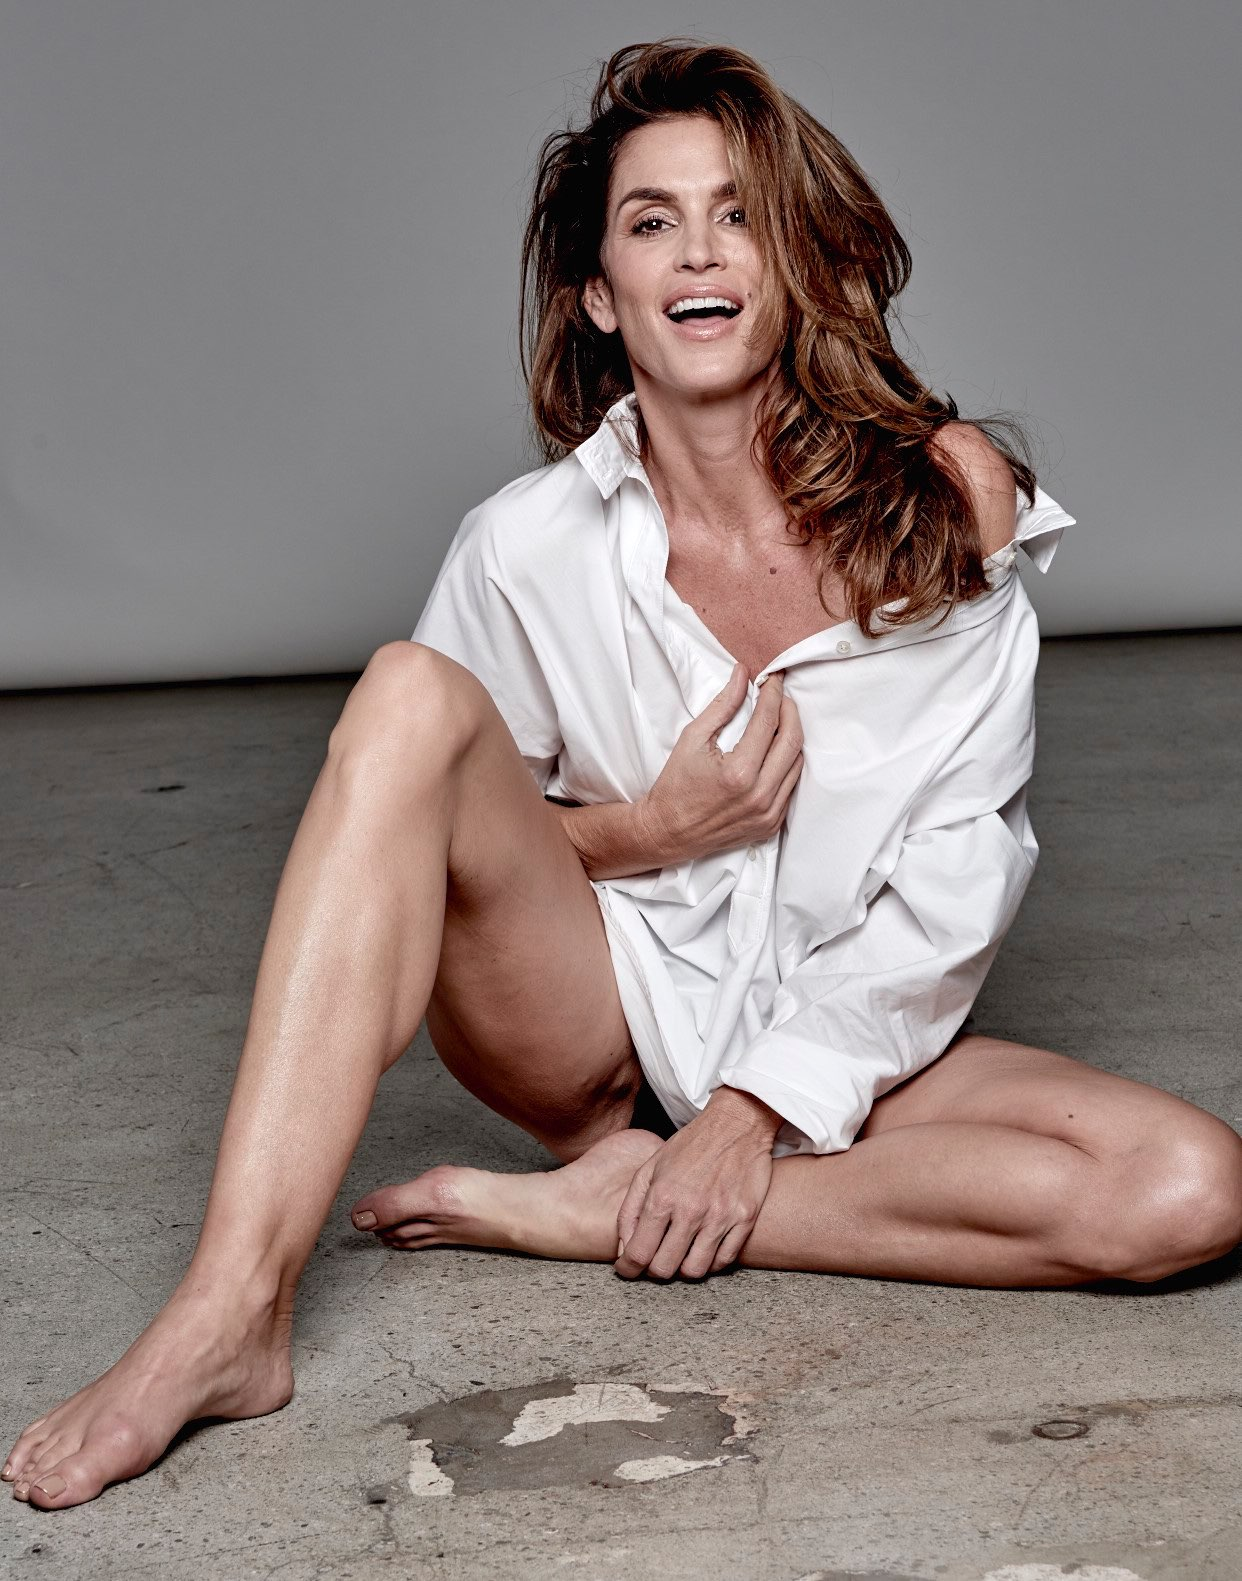 Cindy crawford hot photos-3299